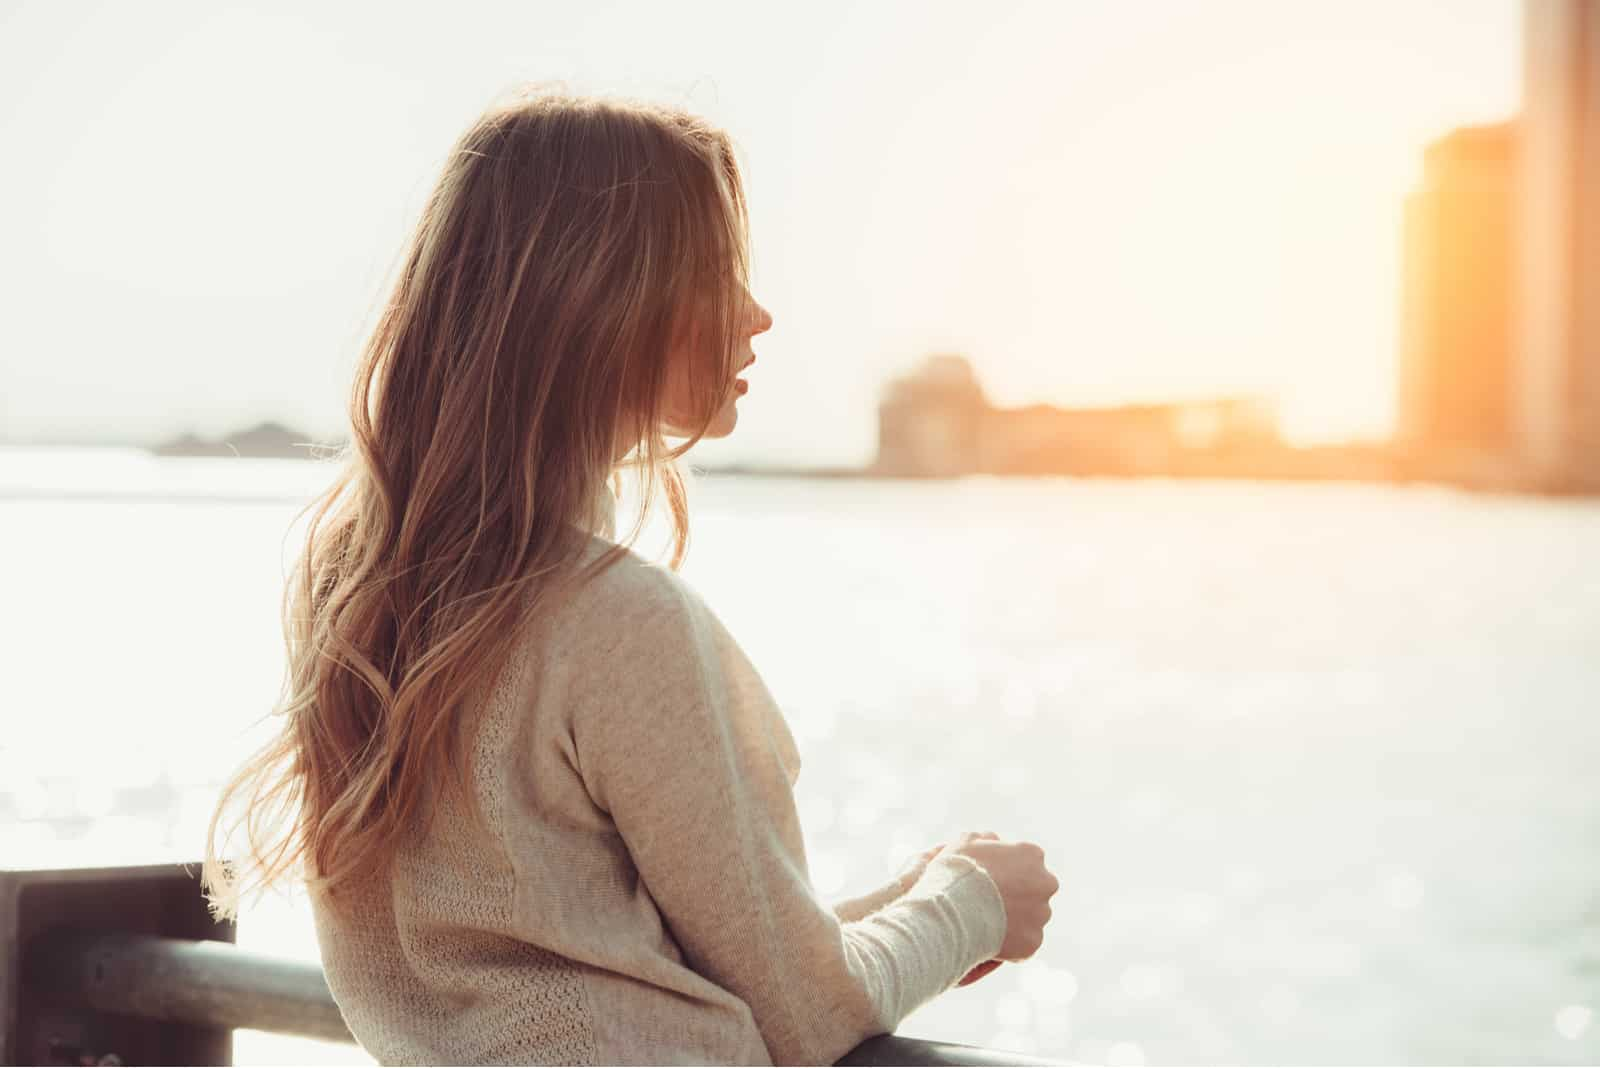 a woman with long brown hair stands by the fence and looks out to sea